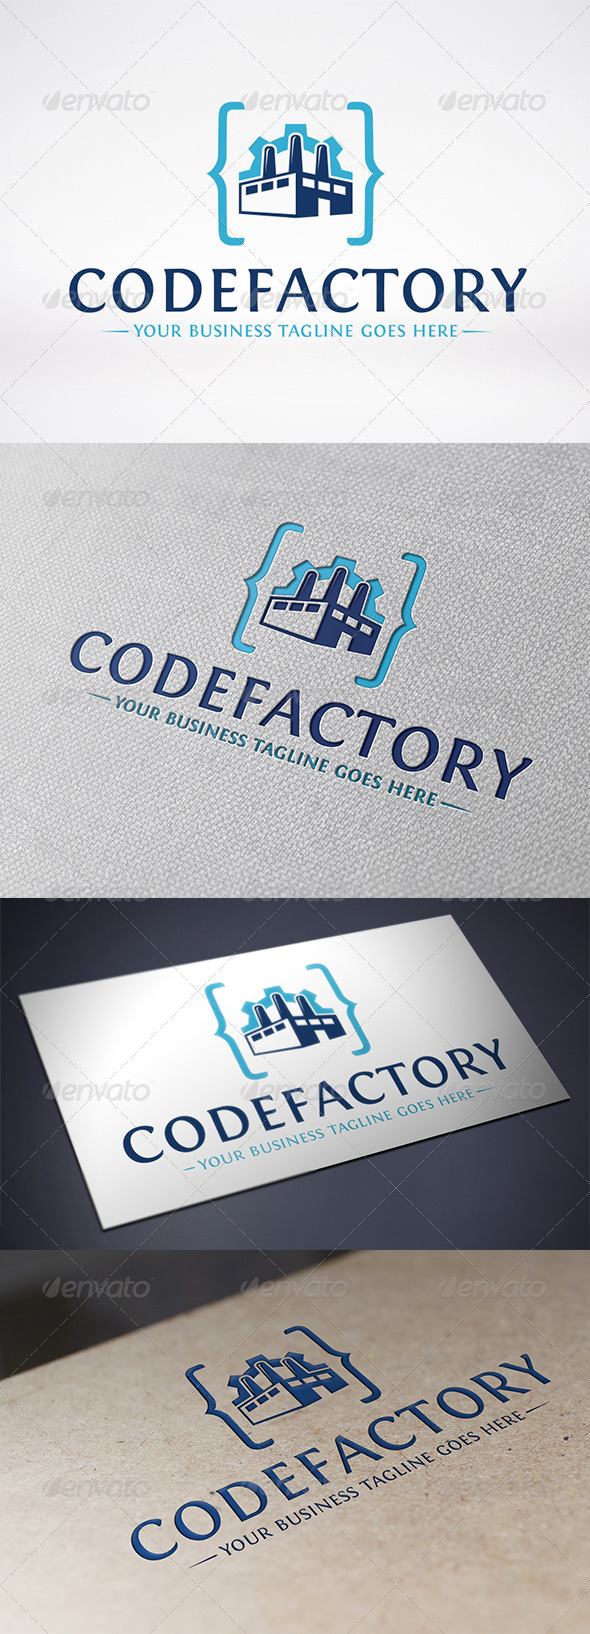 Code Factory Logo Template - Buildings Logo Templates